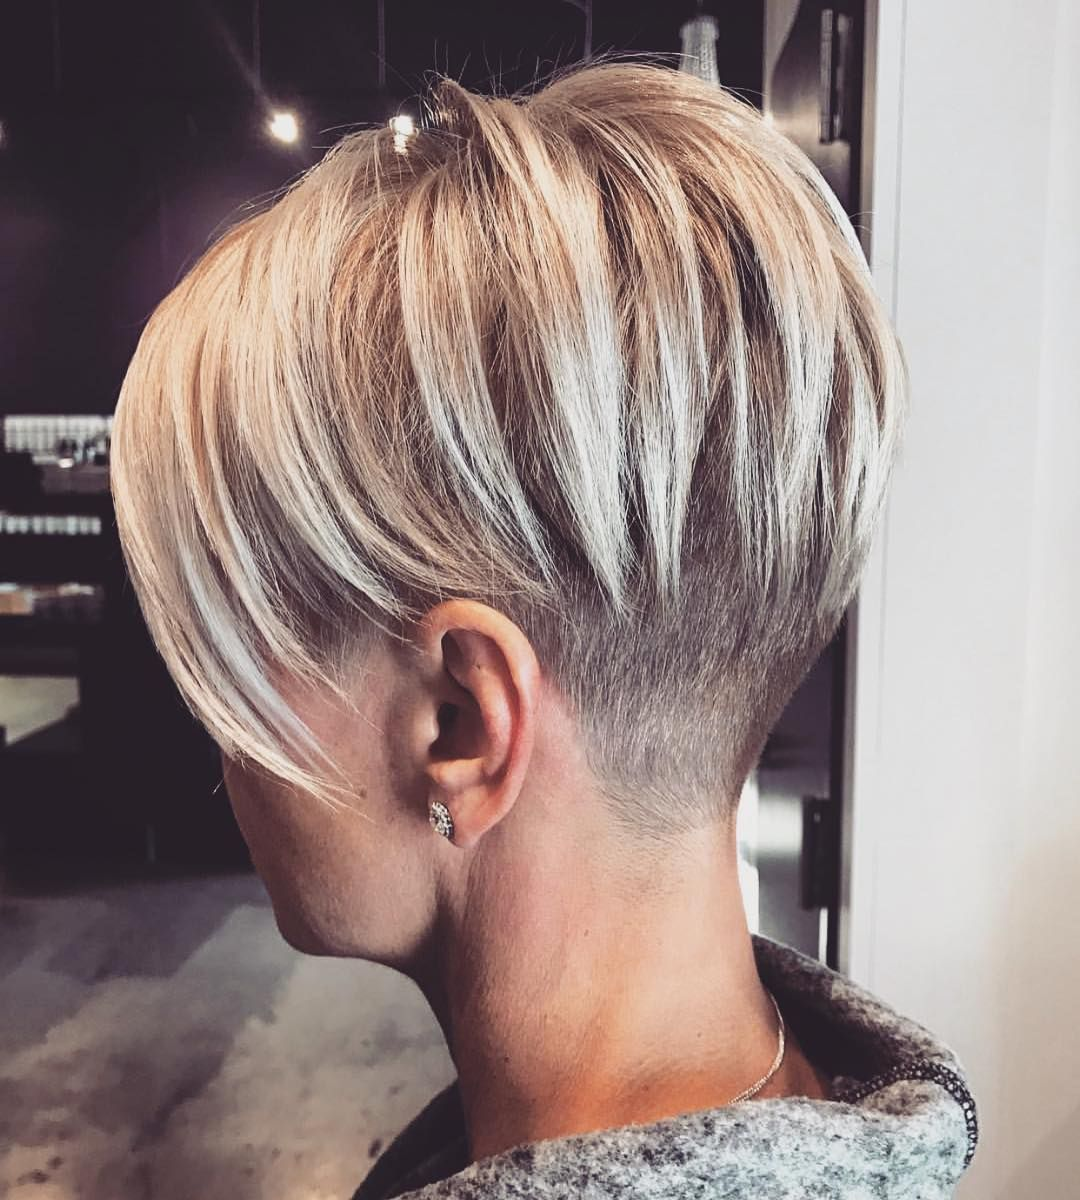 Shaved Pixie Haircuts - Stylish Short Haircut for Women  Short